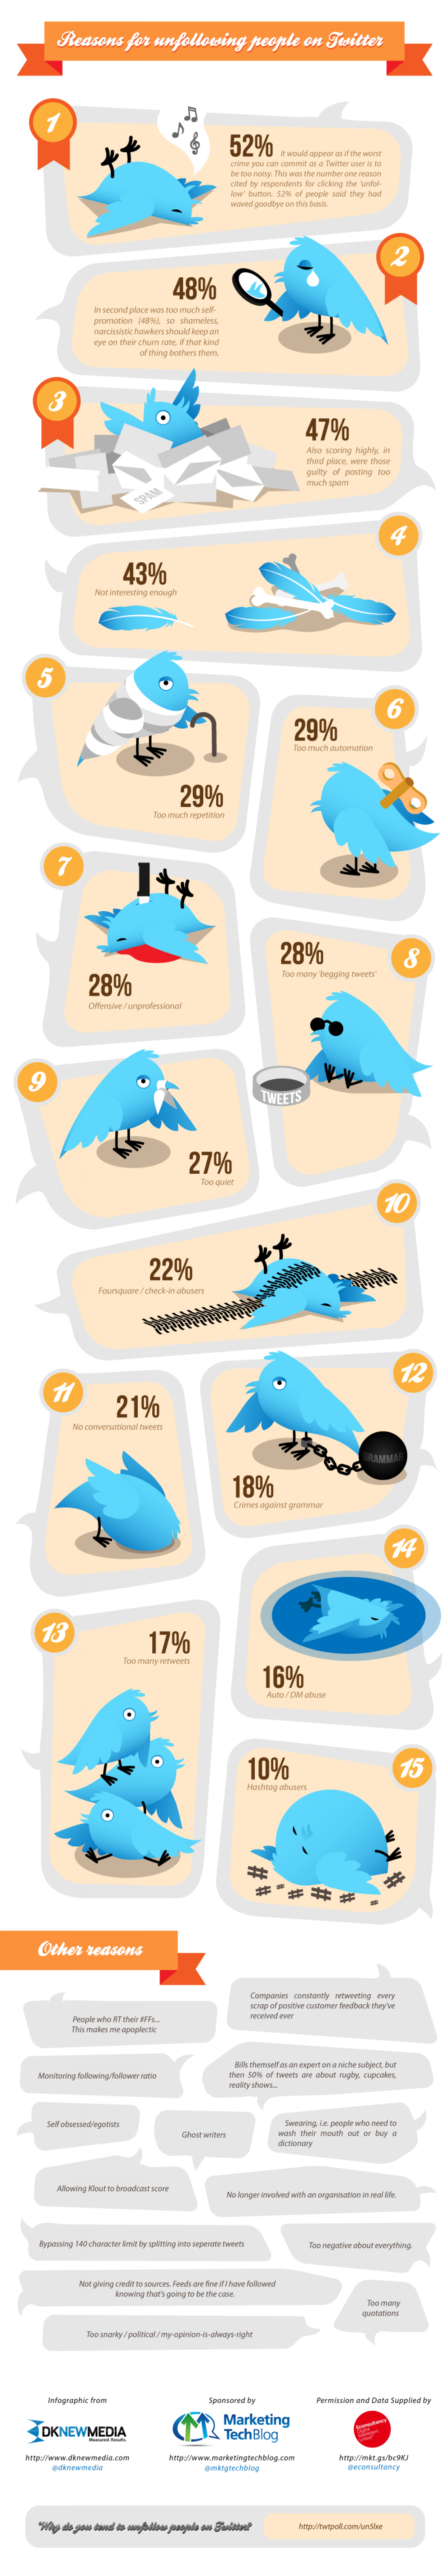 Reasons for Unfollowing People on Twitter Infographic